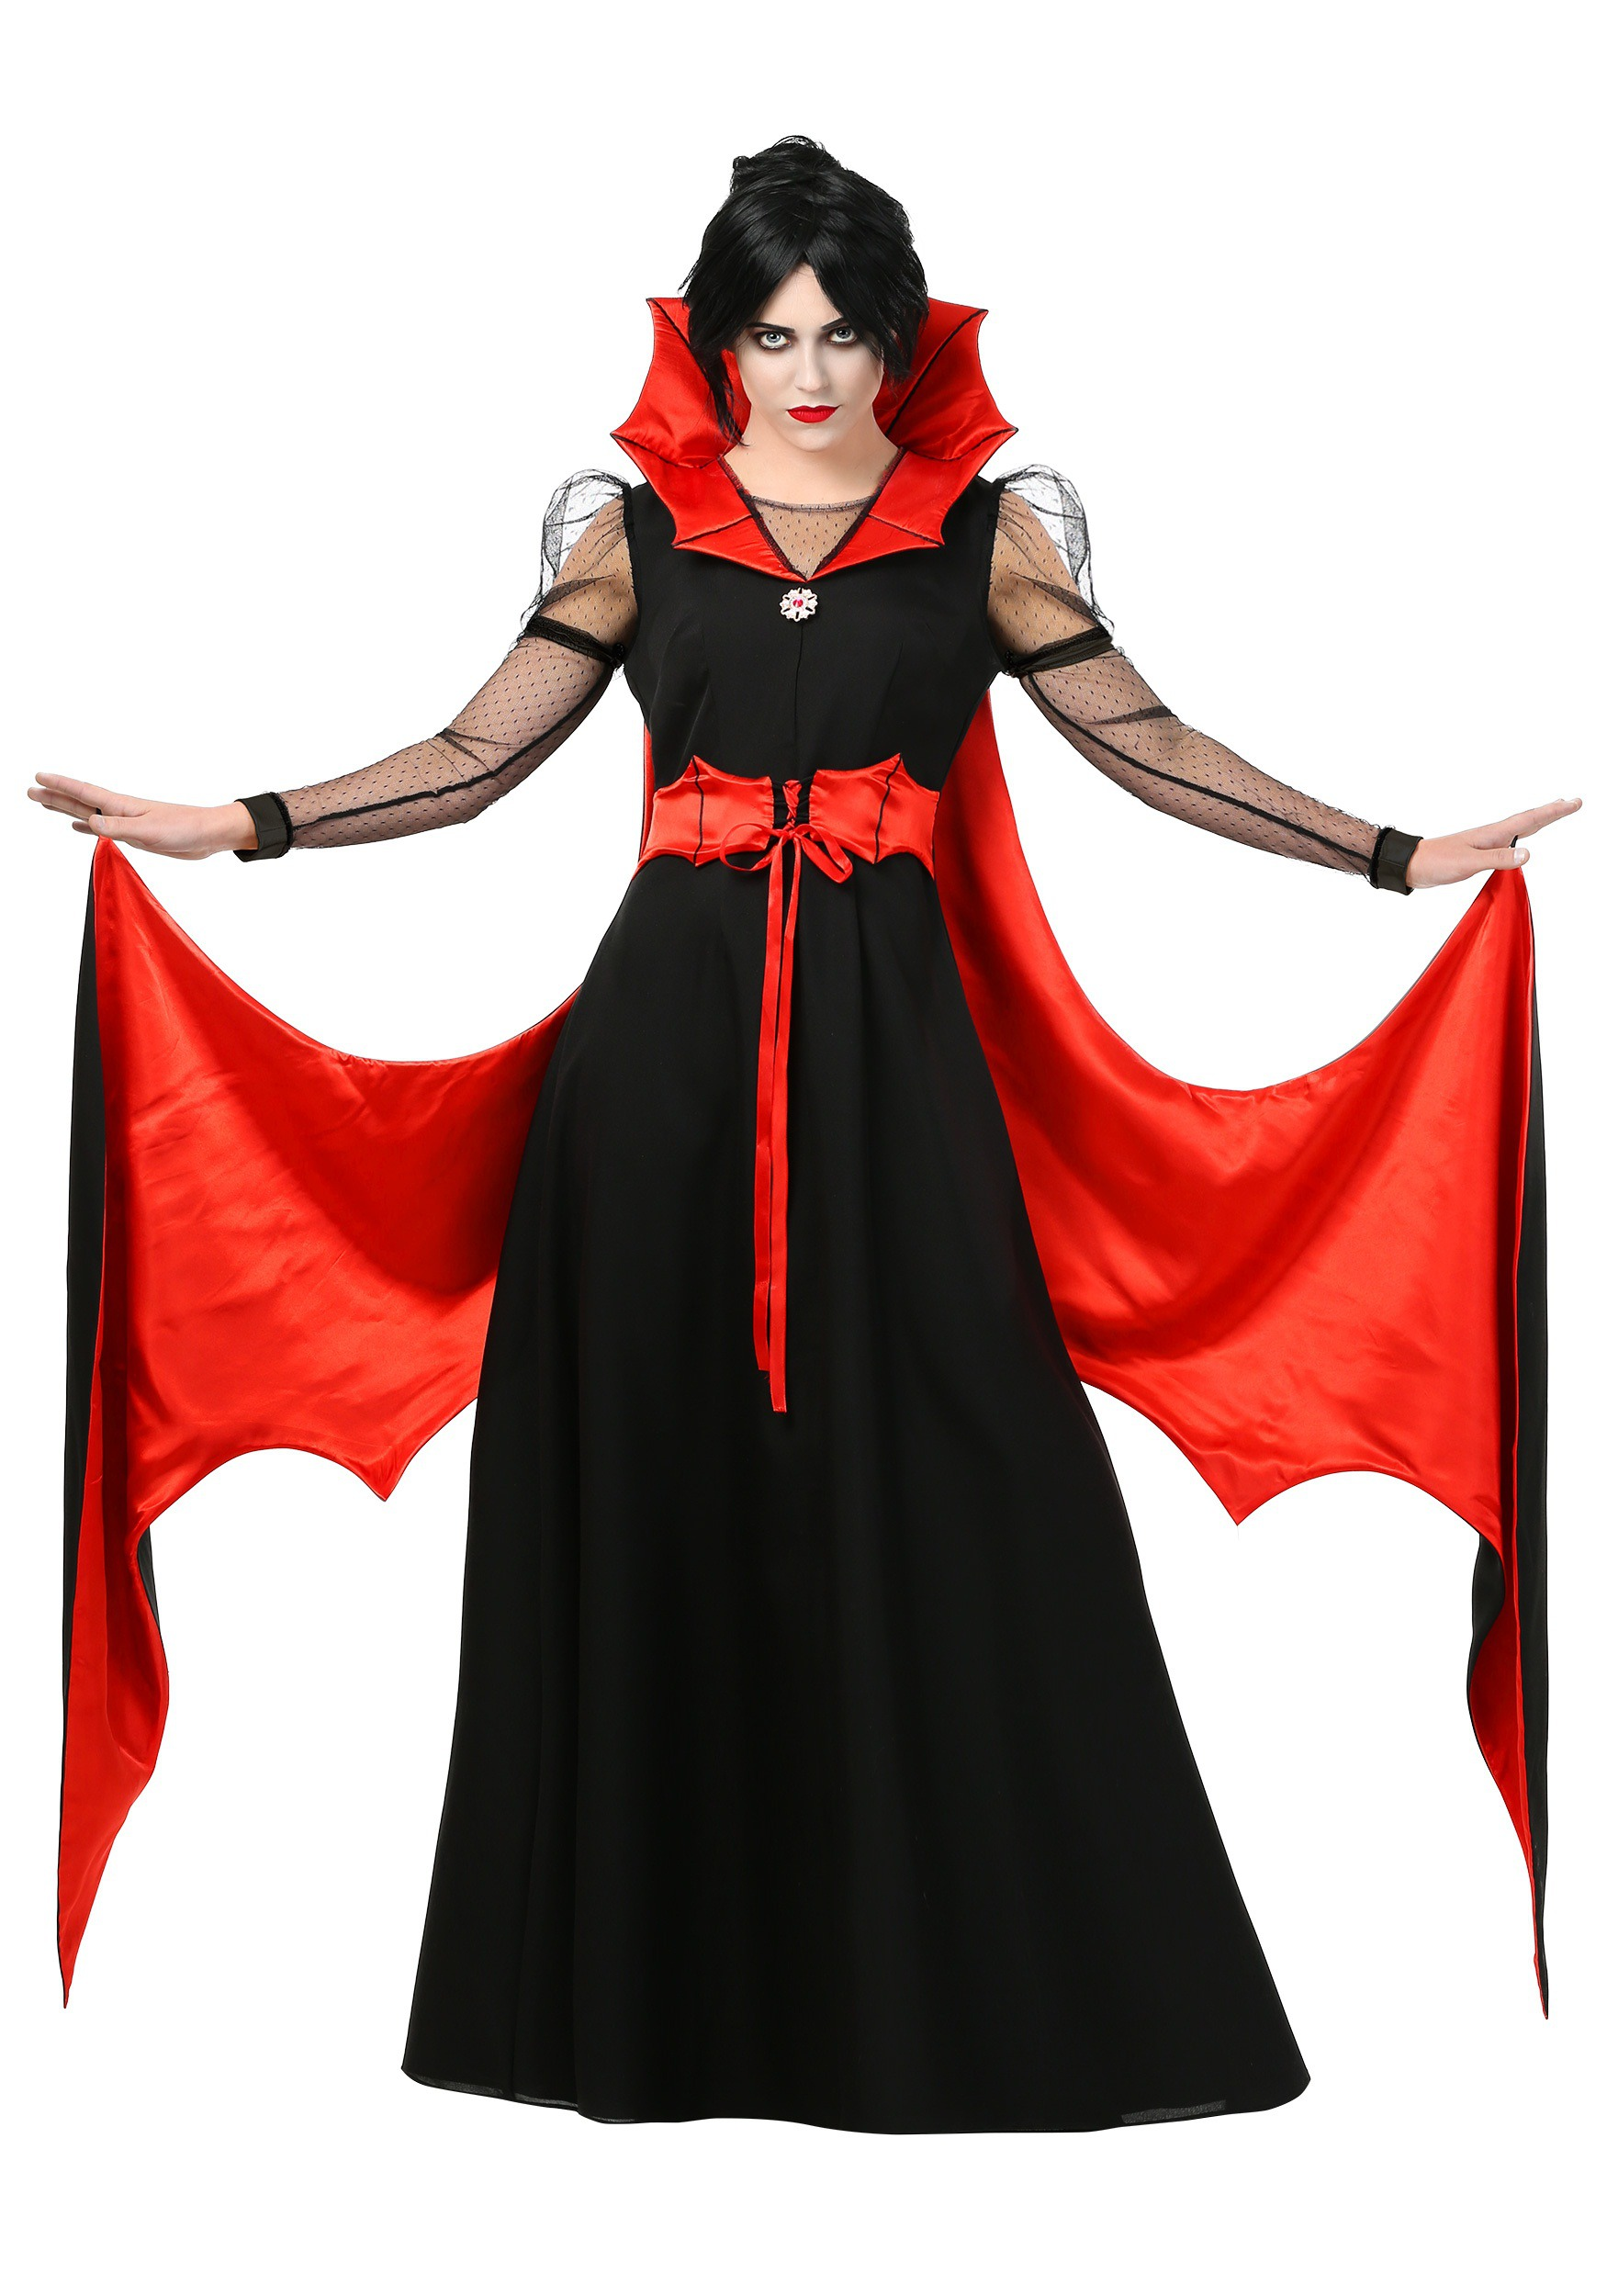 women 39 s batty vampire costume. Black Bedroom Furniture Sets. Home Design Ideas